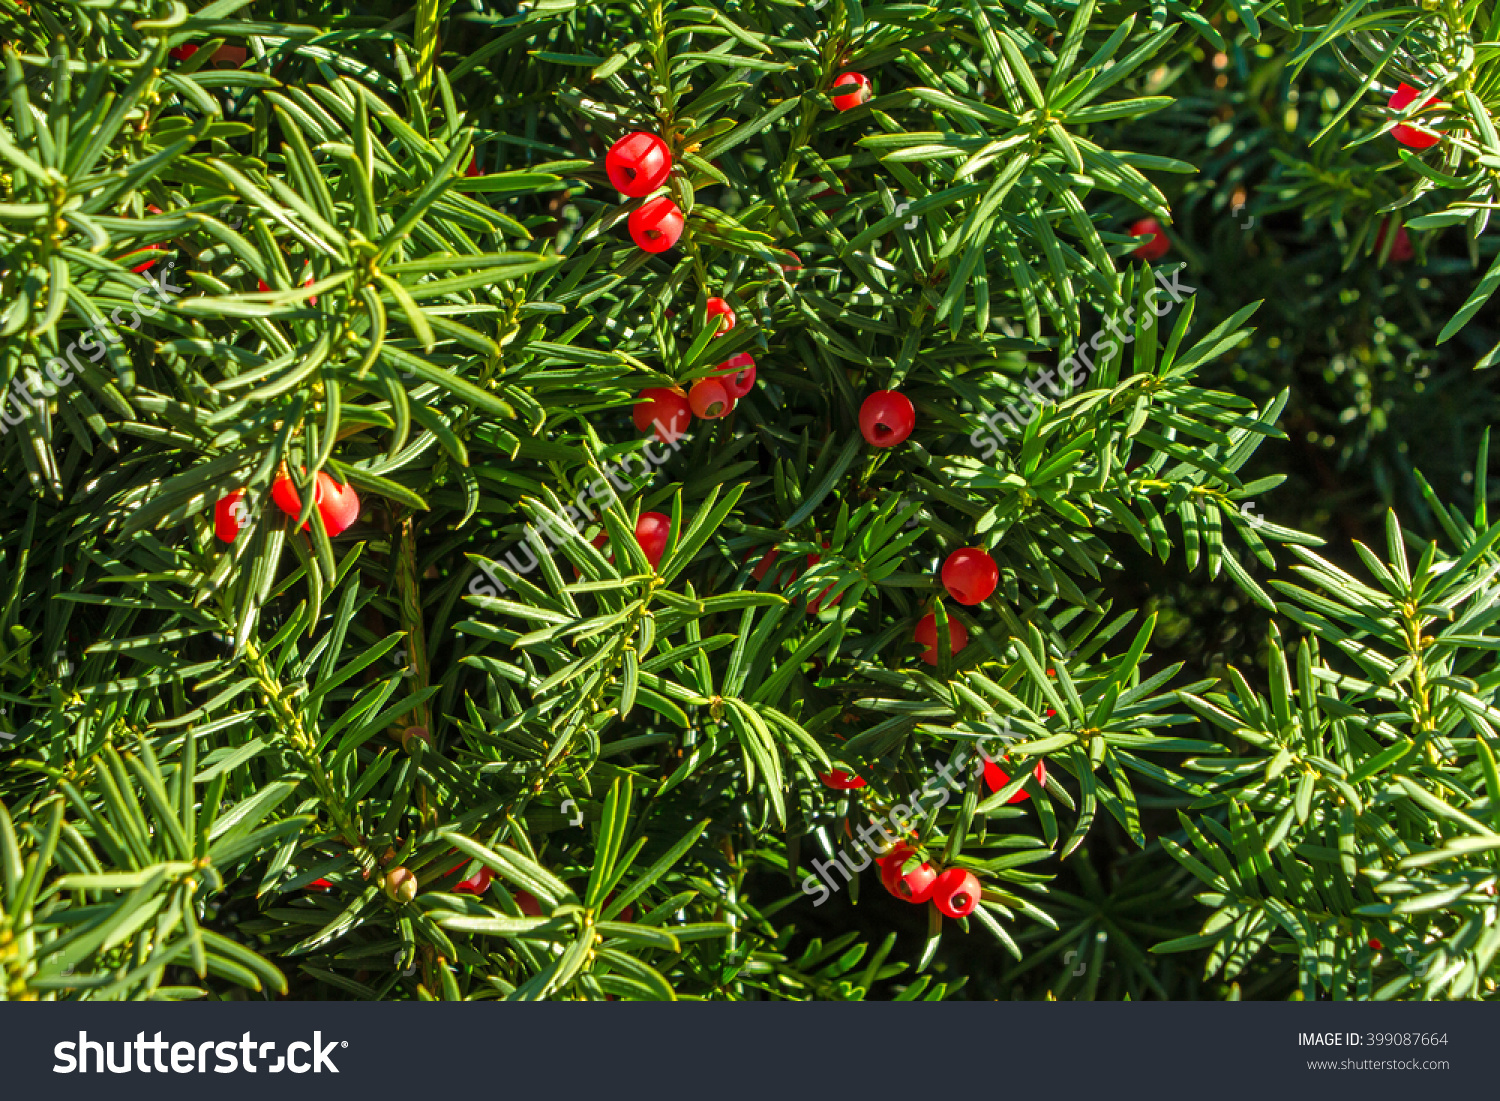 Yew Tree With Red Fruits. Taxus Baccata. Branch With Mature.